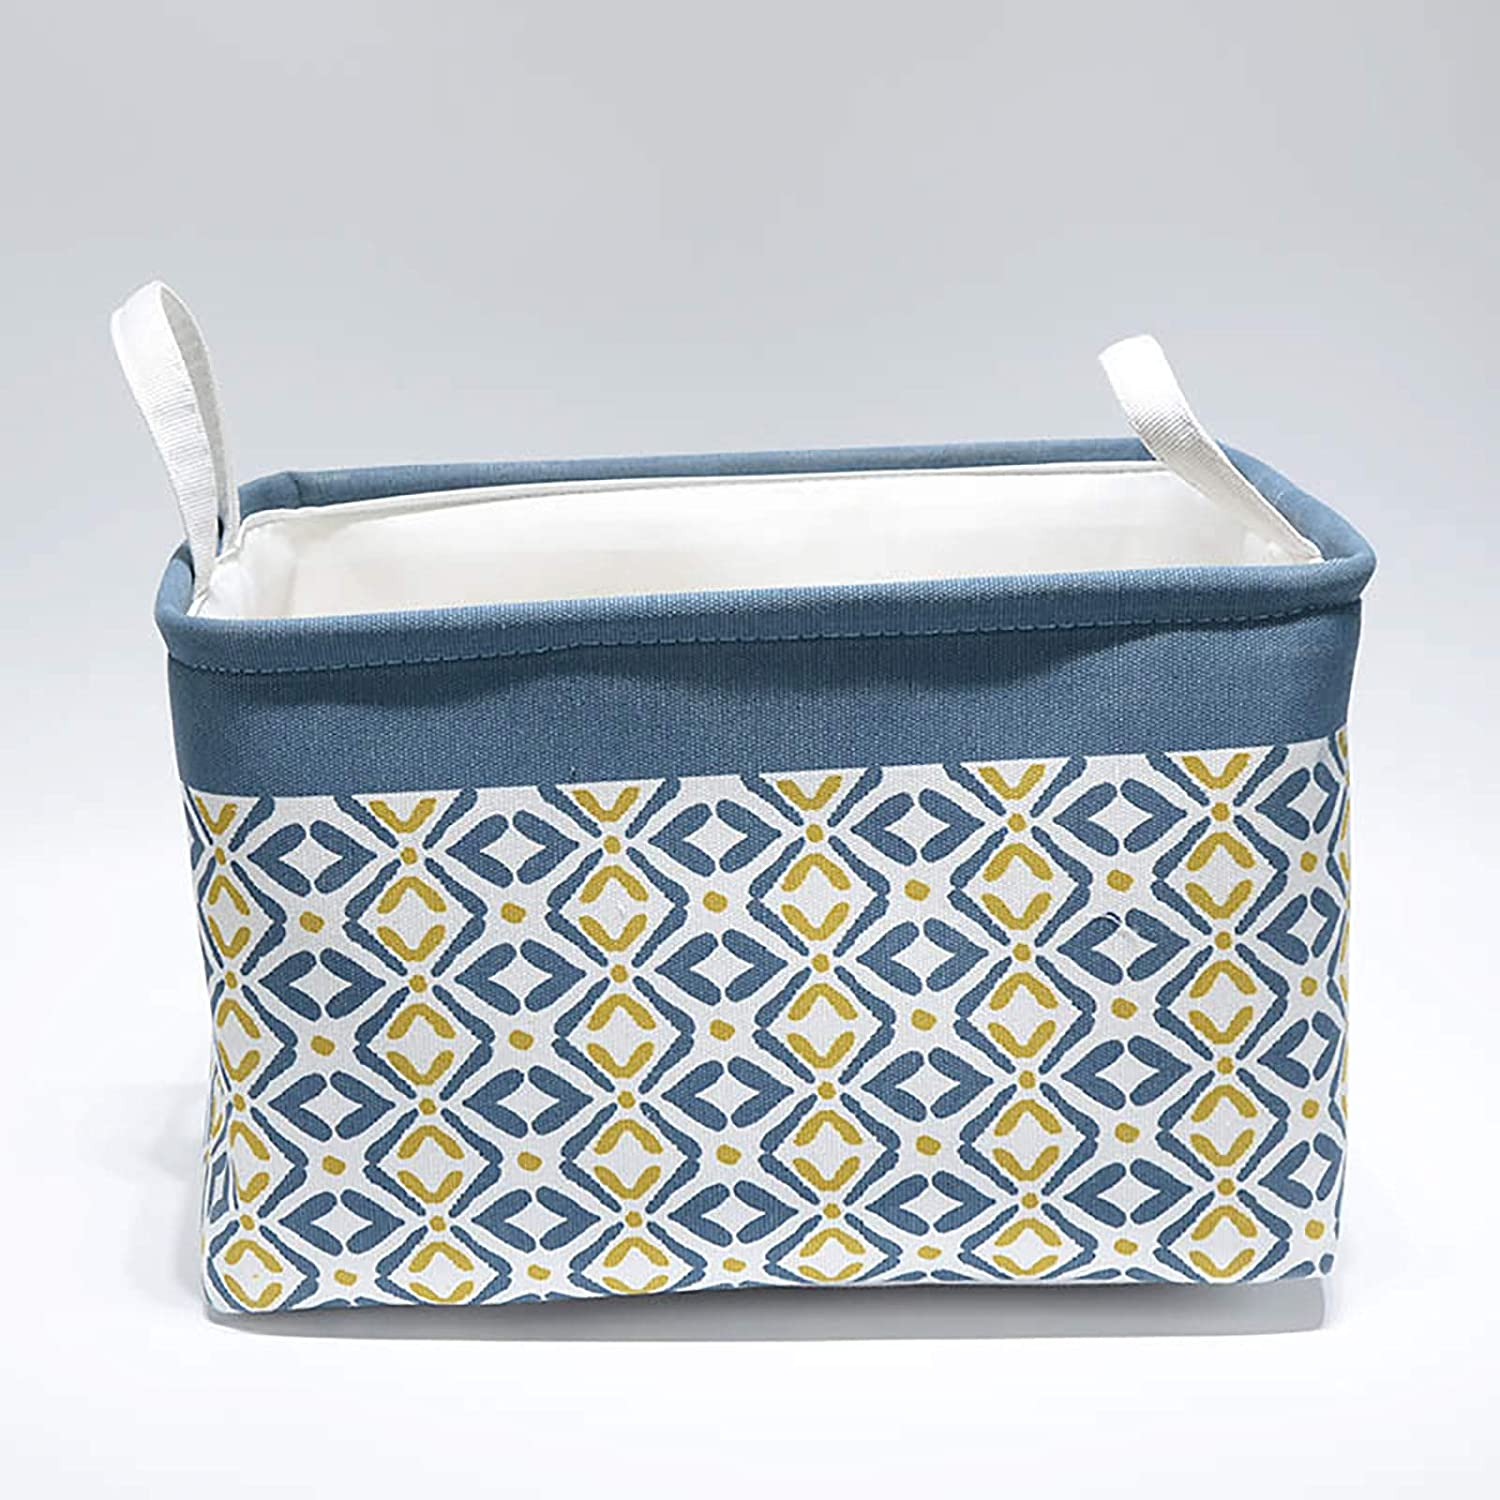 Storage Box Cheap sale Foldable Basket with Handle for All stores are sold Used House